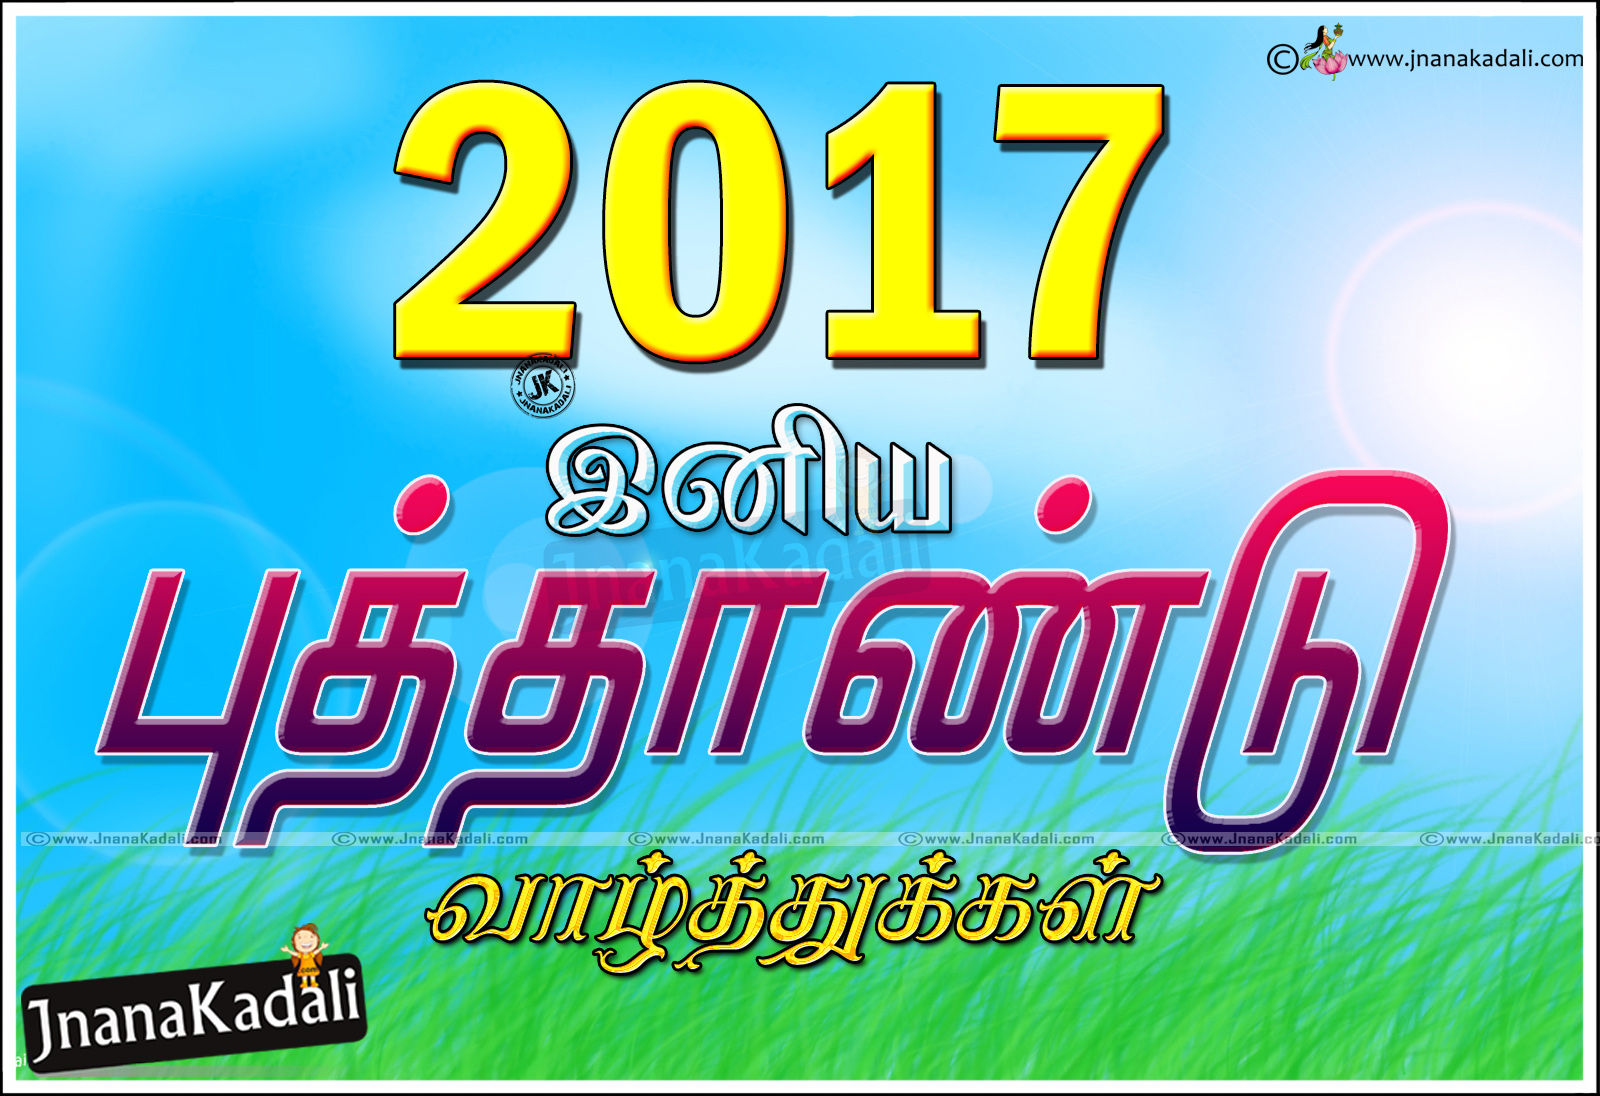 Happy new year 2017 greetings quotes wishes with hd wallpapers in happy new year 2017 greetings in tamil tamil new year greetings best new year tamil quotes hd wallpapers tamil greetings in tamil font 4k tamil new year m4hsunfo